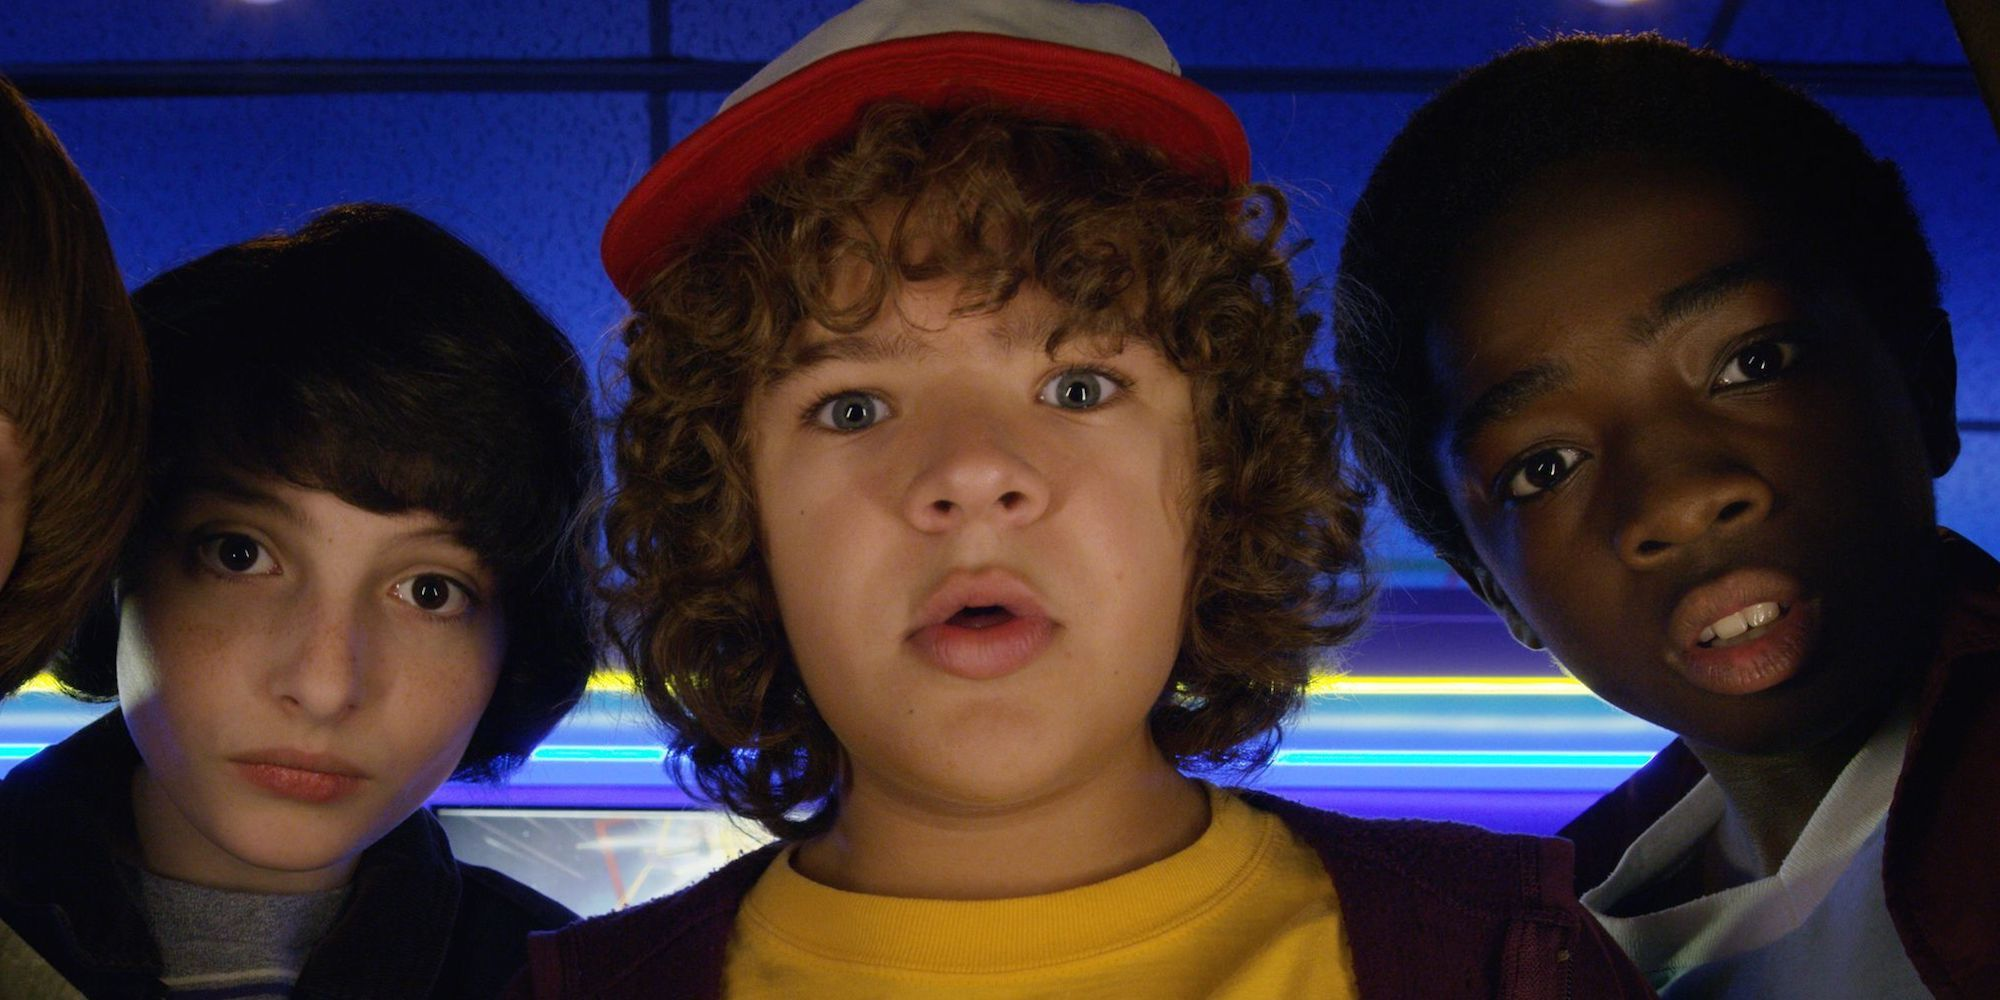 10 Shows To Watch If You Like Stranger Things